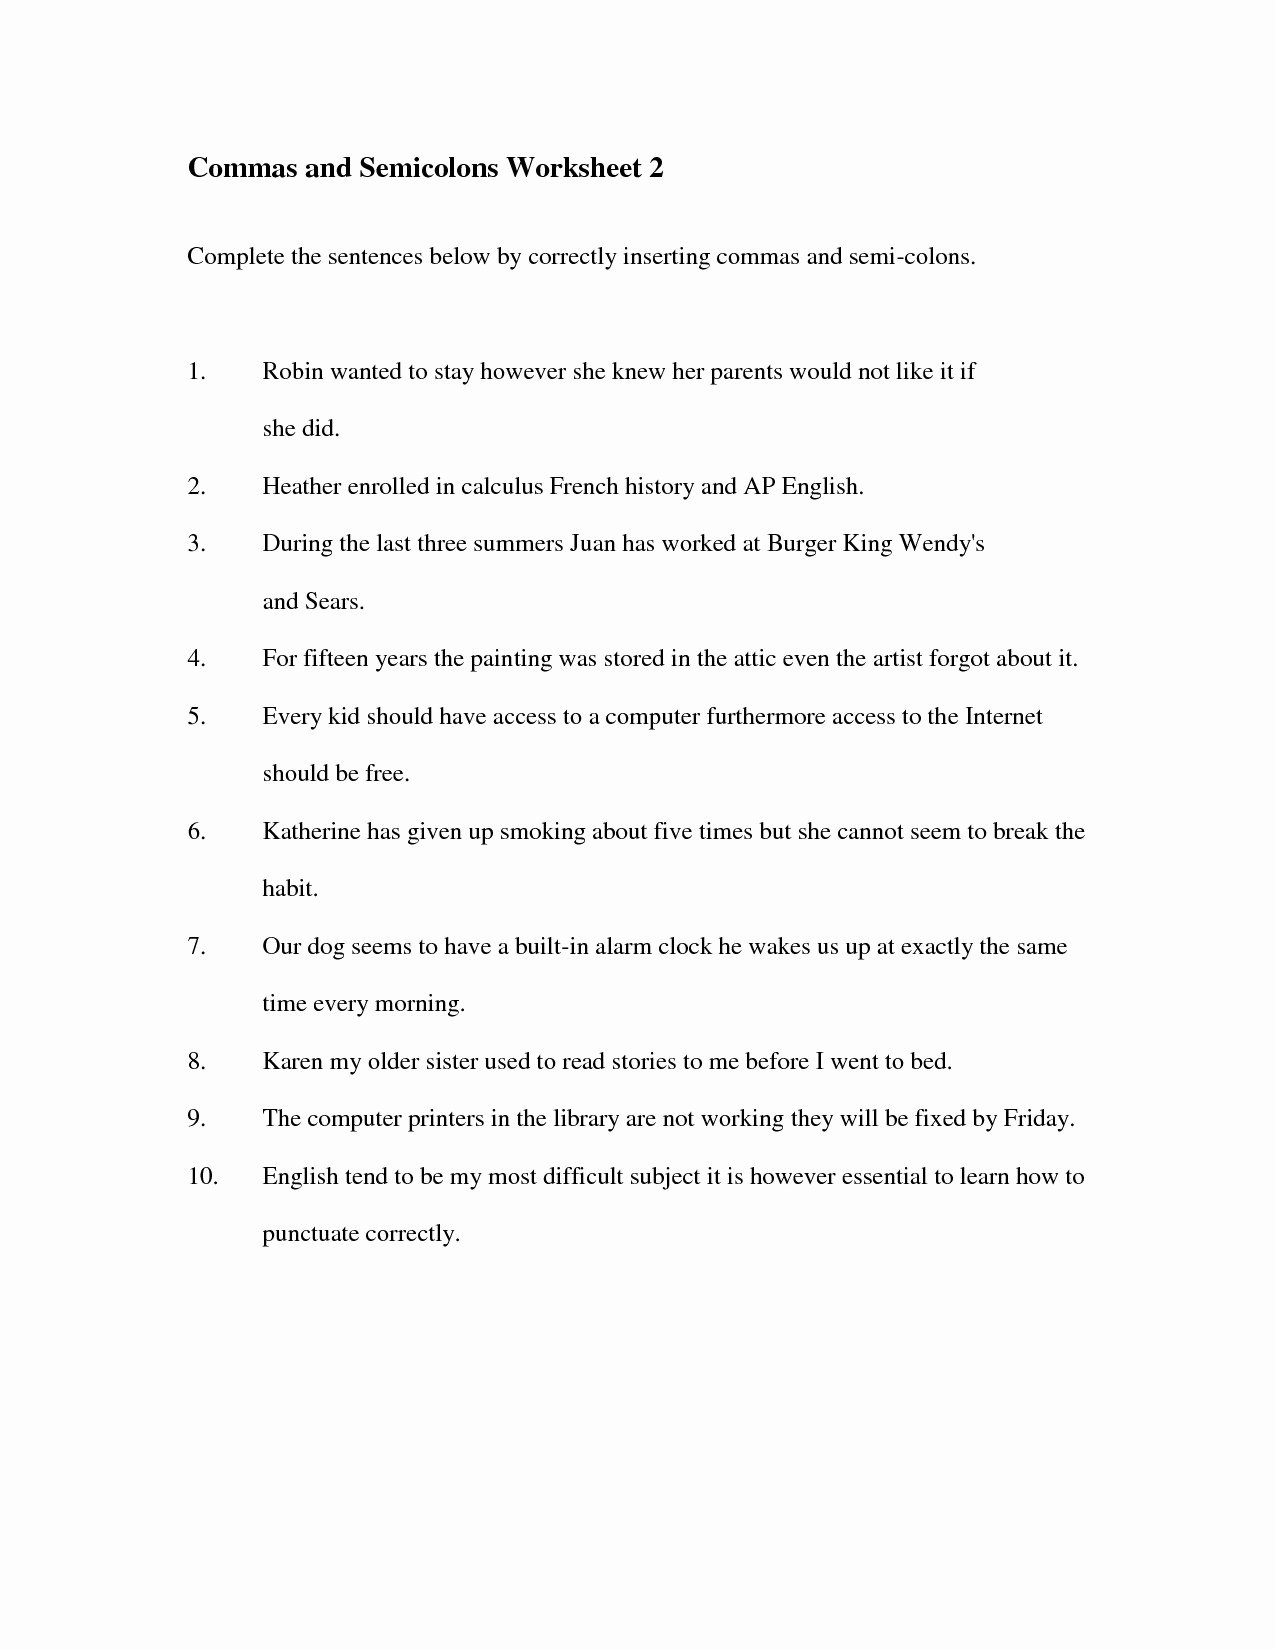 Semicolons and Colons Worksheet Unique Mas Semicolons and Colons Worksheet